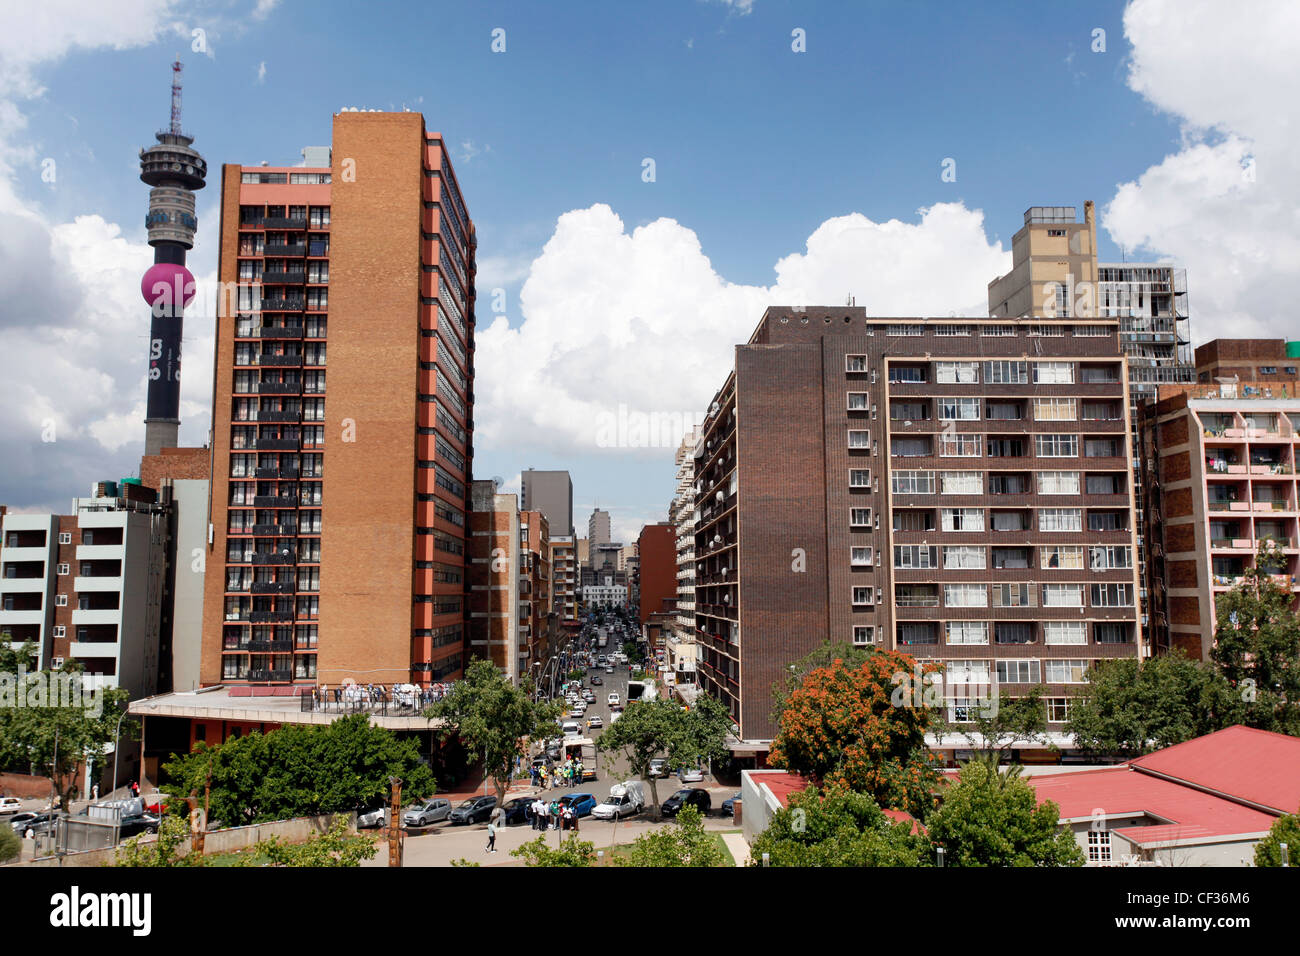 Hillbrow is the inner city residential neighbourhood of Johannesburg, Gauteng Province, South Africa. - Stock Image